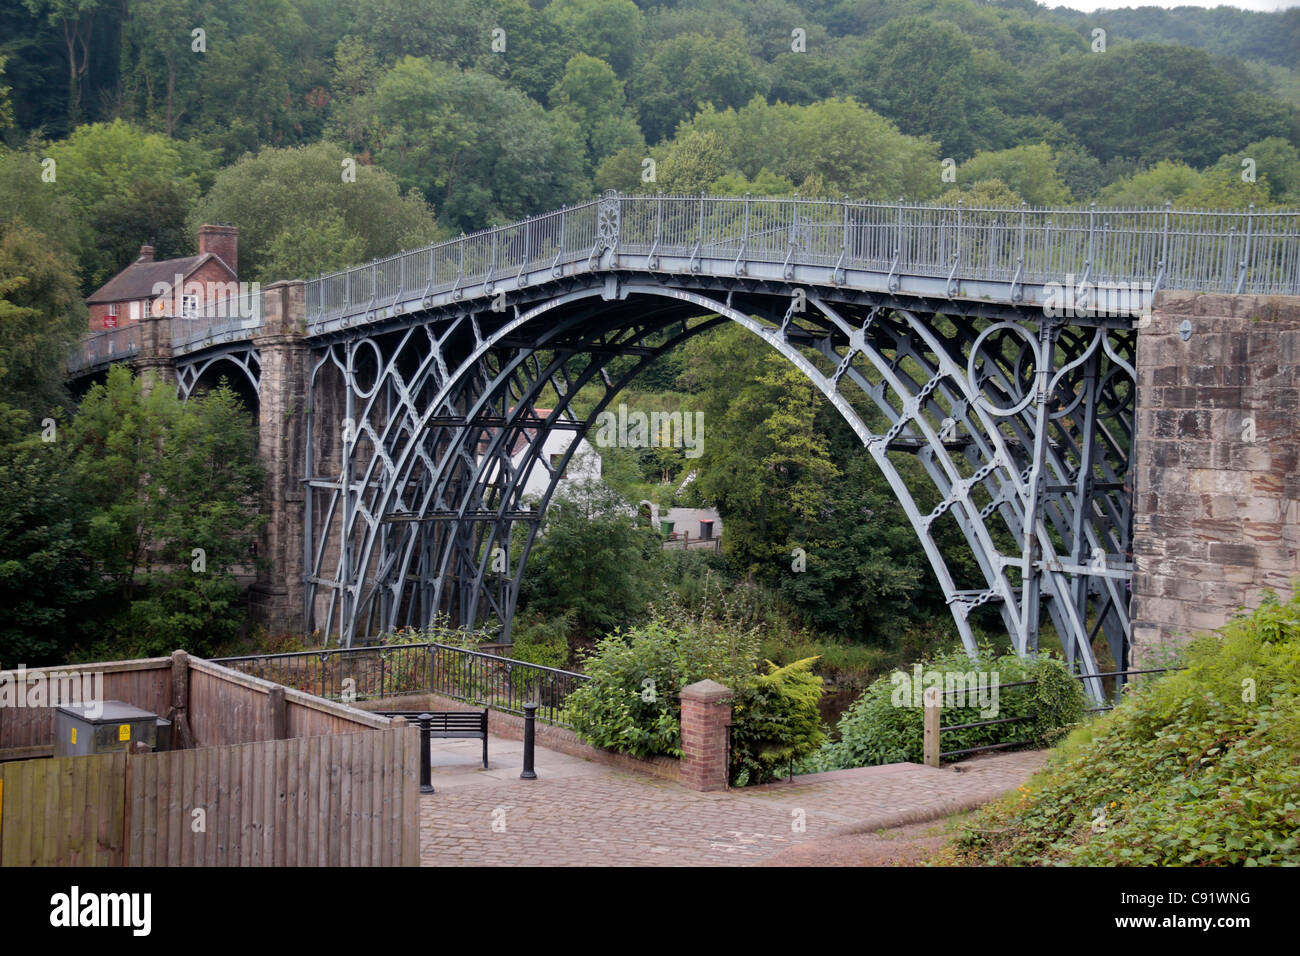 The historic Iron Bridge, the first of its kind built in 1779, in Ironbridge Gorge, Shropshire, UK. Stock Photo